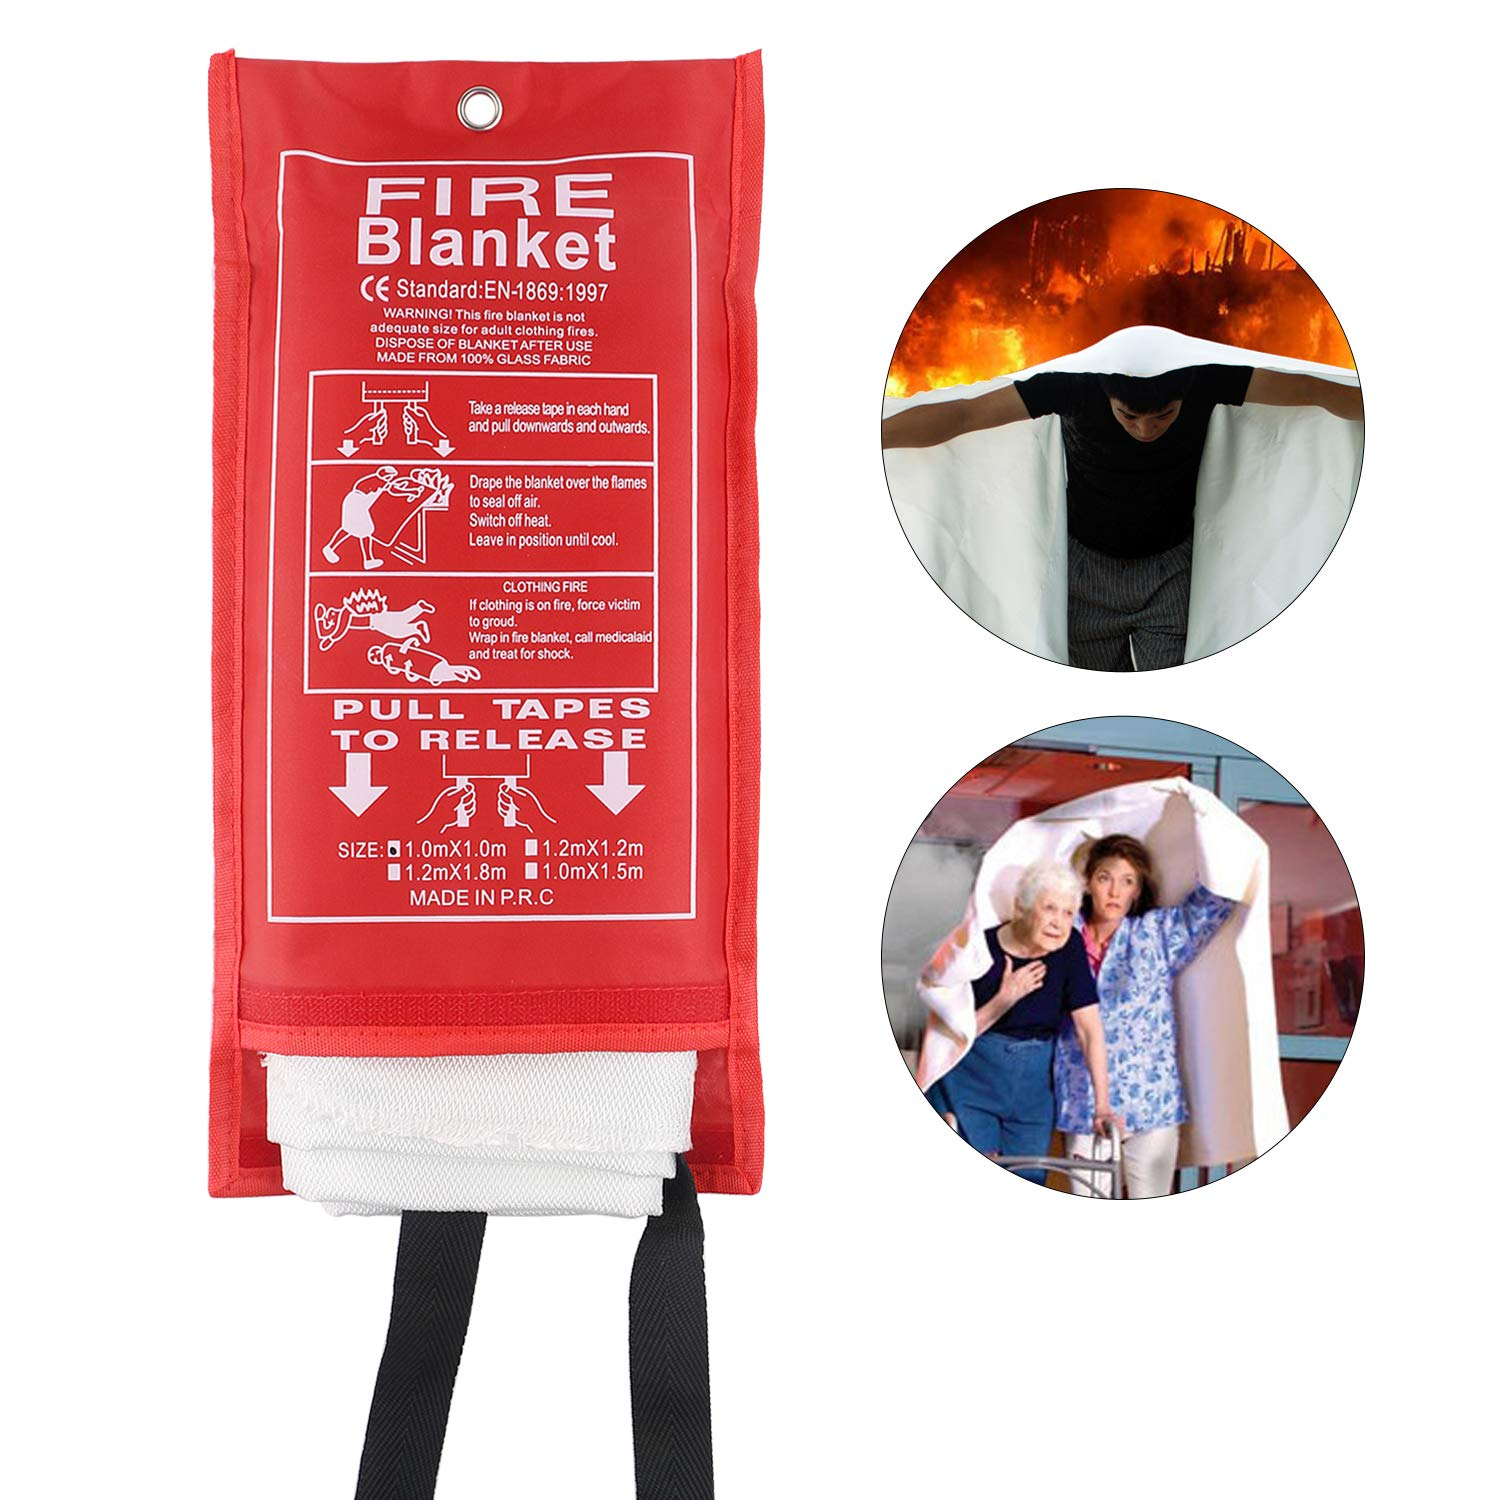 Fire Blanket Emergency Survival Fiberglass Protective Blanket Flame Retardant Heat Insulation Safety Fire Cover Shelter Welding Blanket for Car Kitchen Fireplace Grill Camping (39x39 inches)